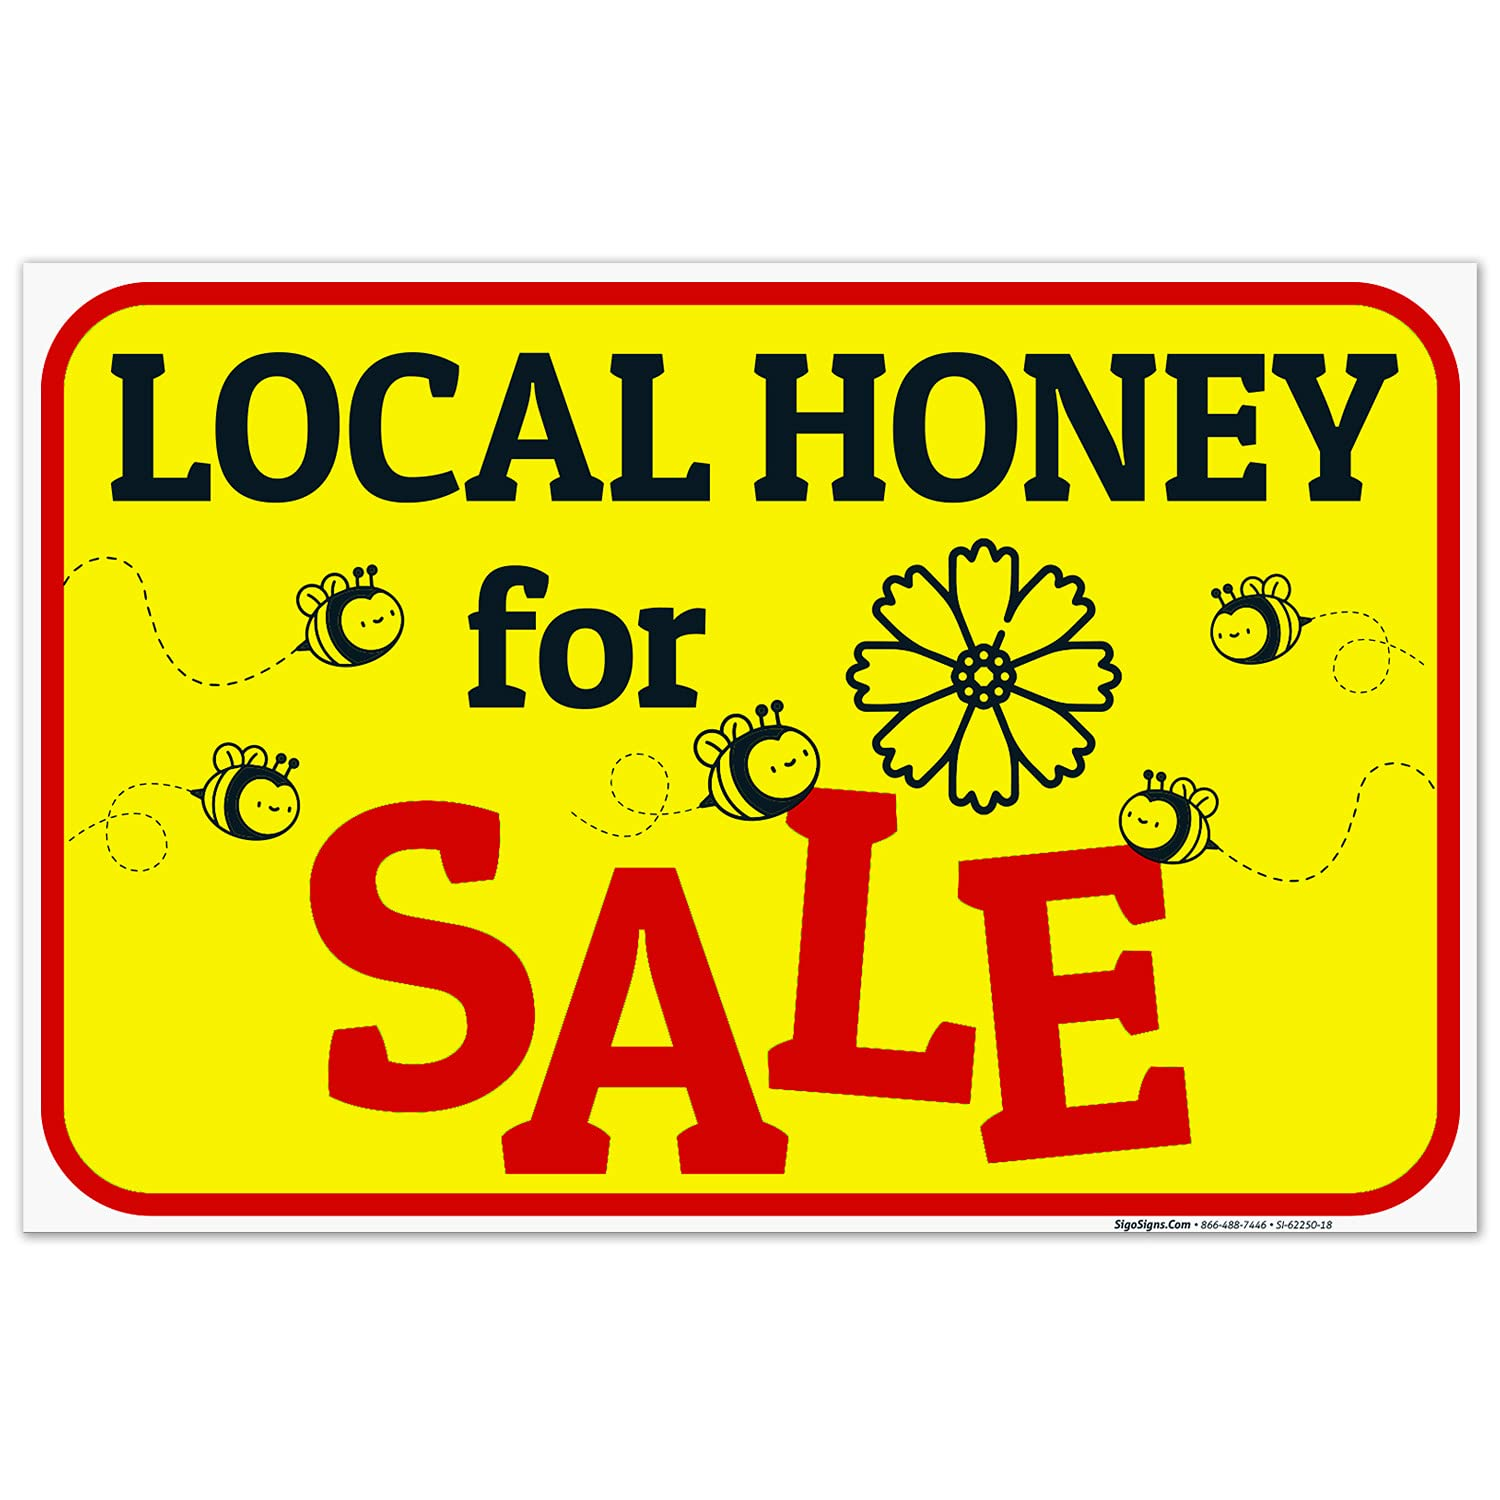 Local Honey for Sale Safety and trust with Drawing Sign Inches Mil 24x36 Th Complete Free Shipping 160